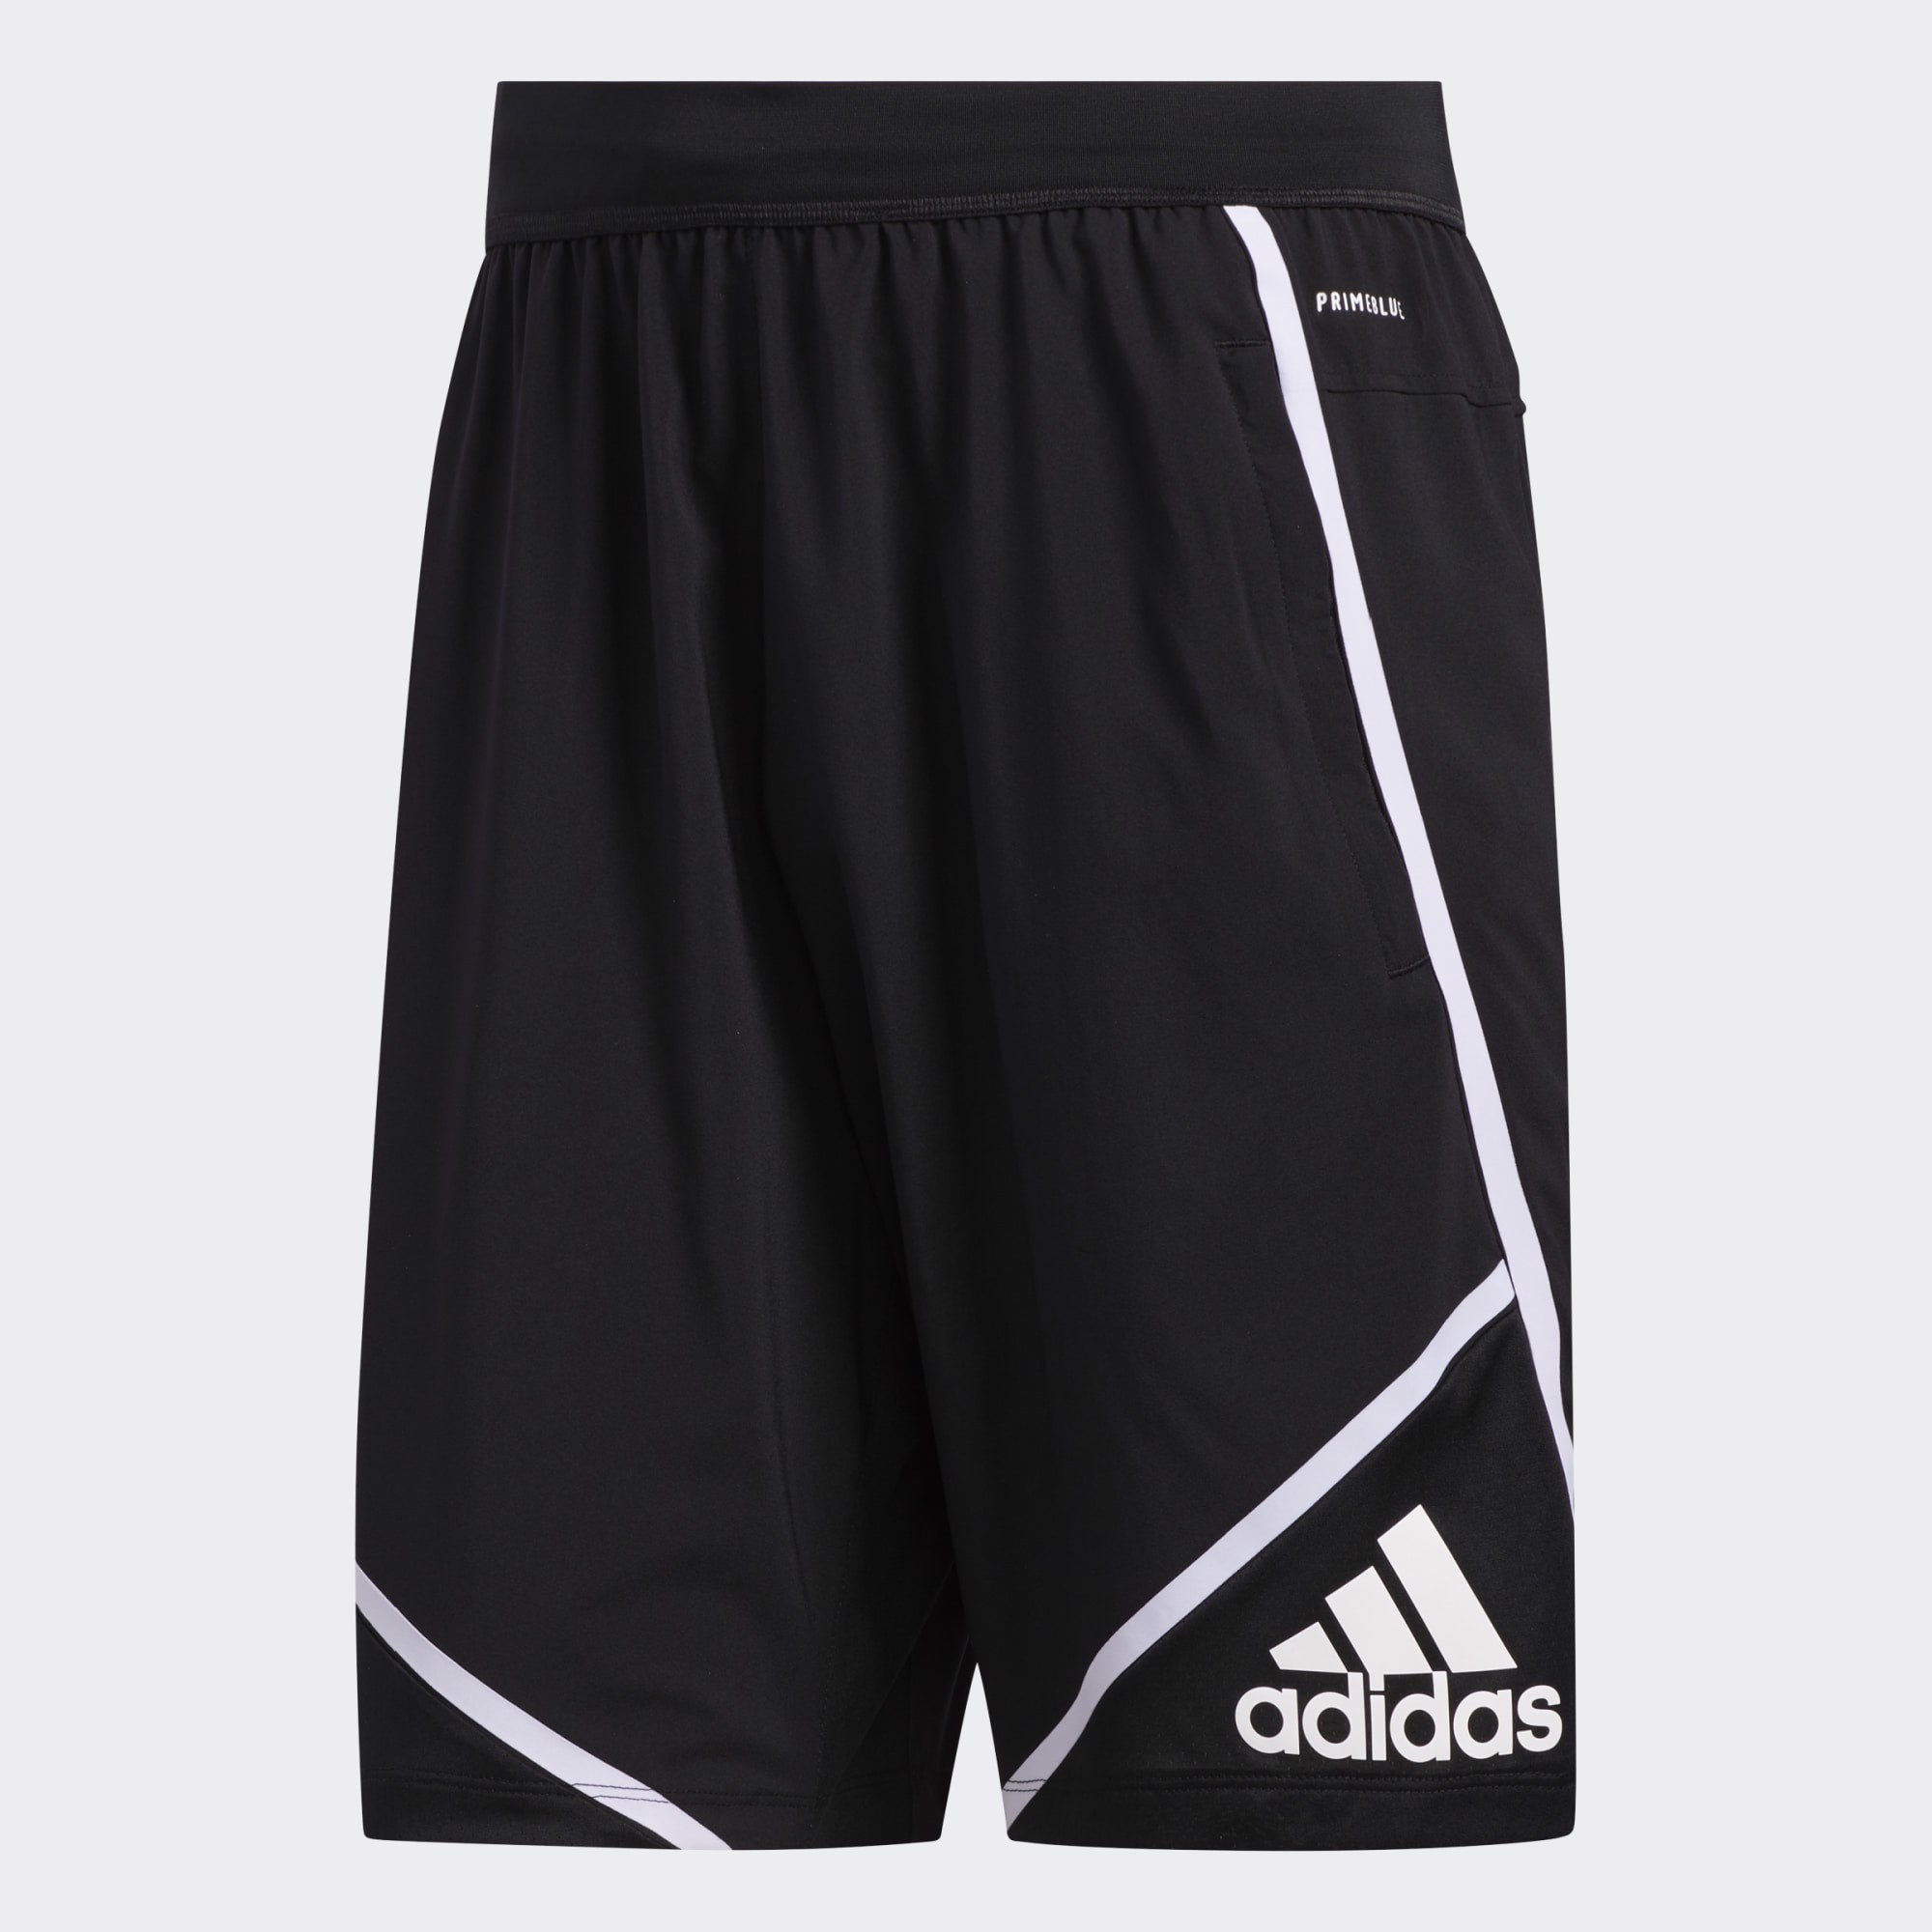 adidas - Quần ngắn Nam Primeblue Short Shorts Training Men FW20-GD73